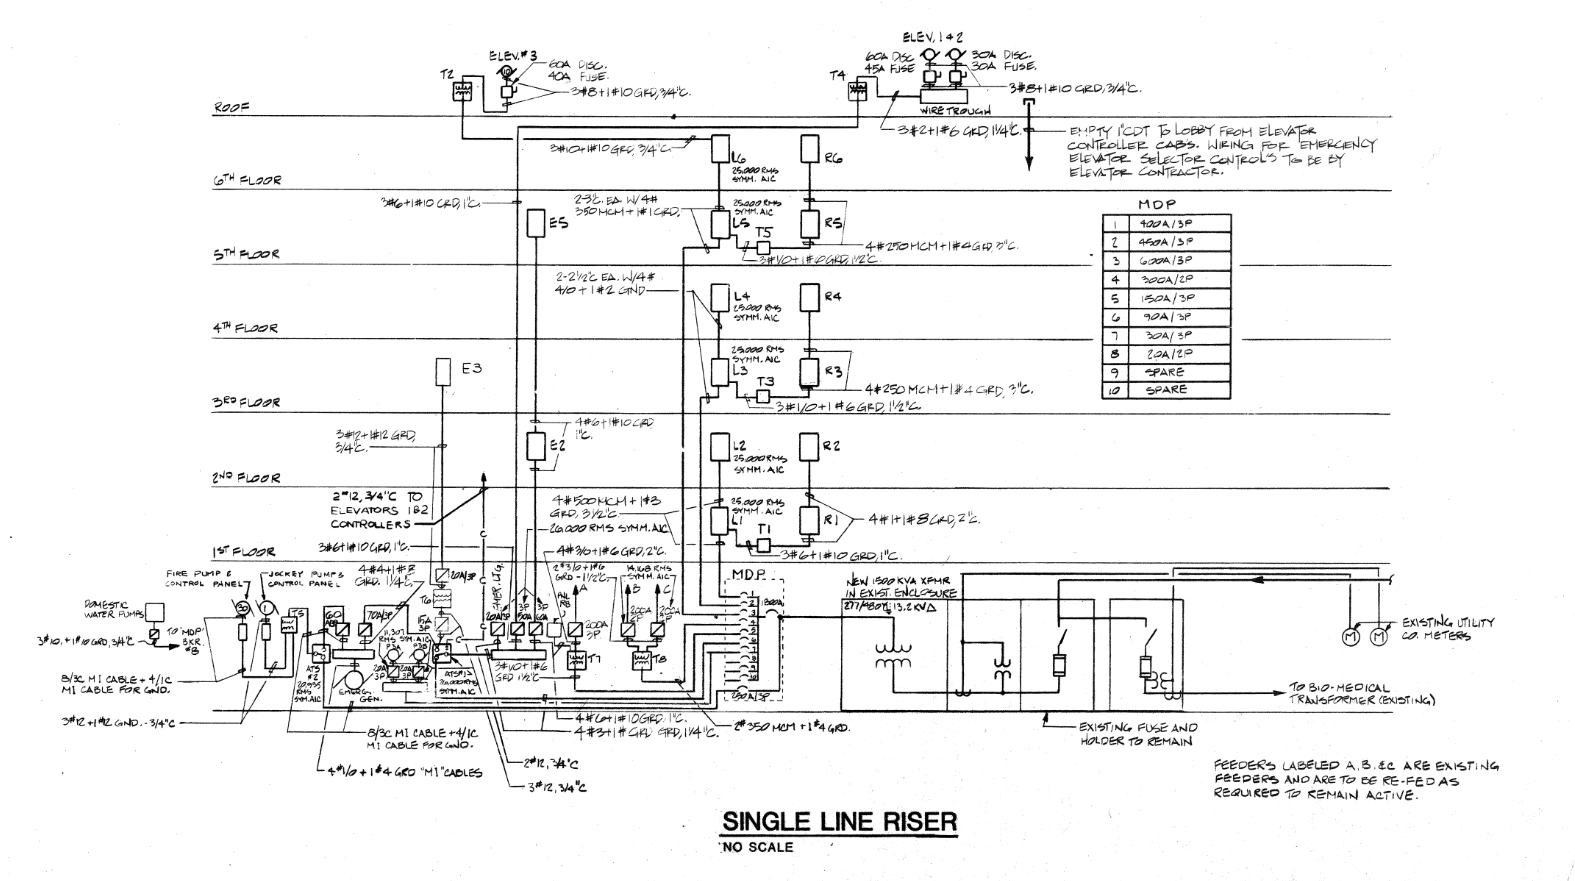 fire alarm circuit diagram also building automation system diagram